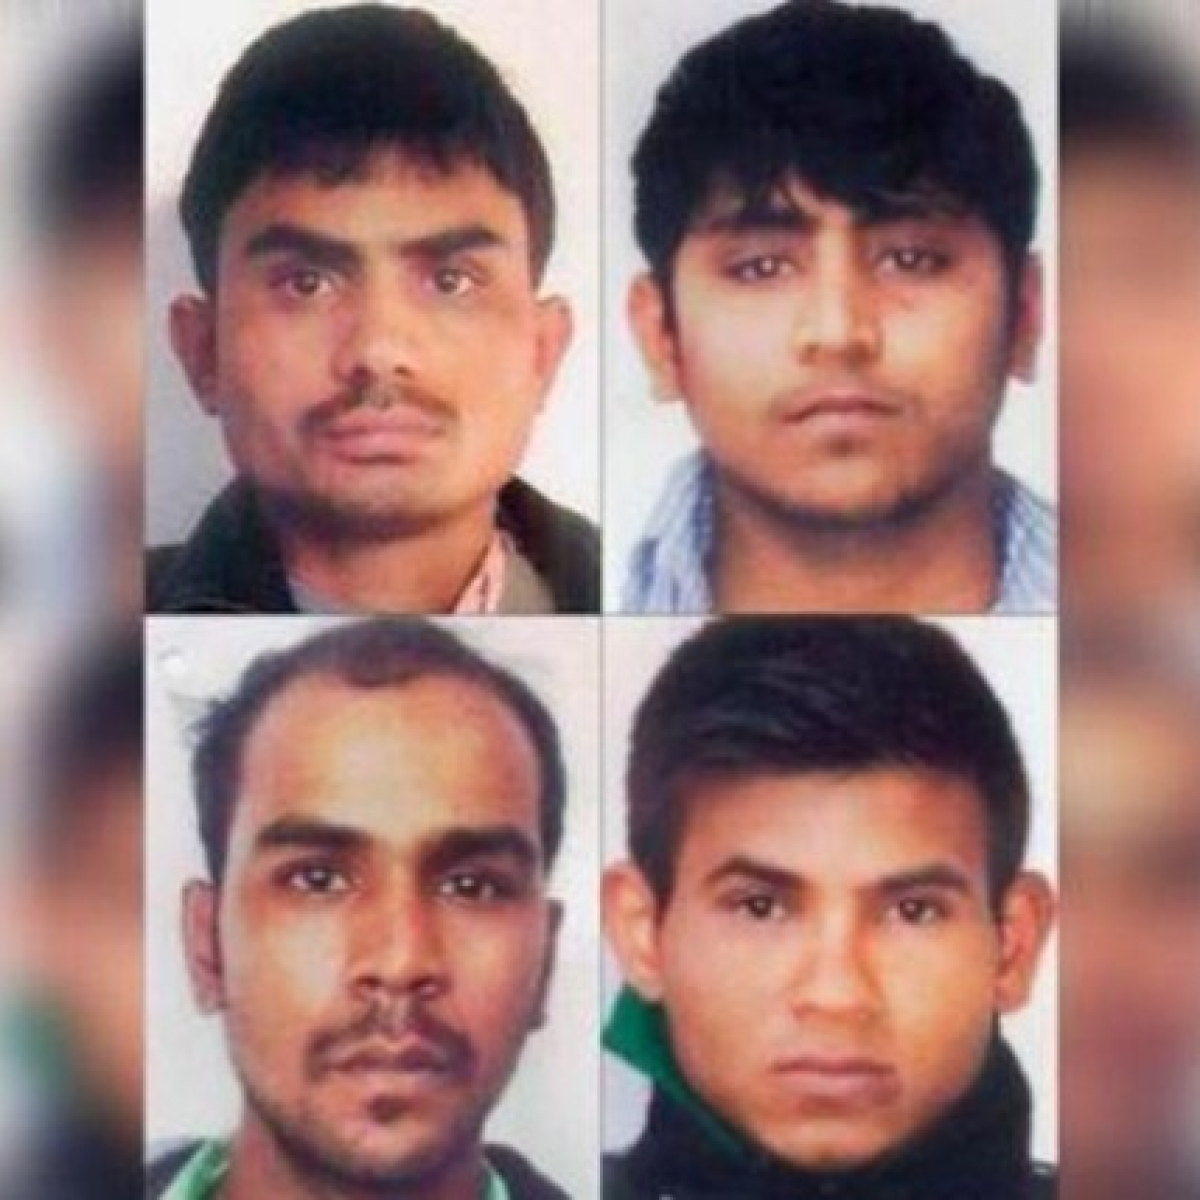 Tihar jail authority ask Nirbhaya case convicts to inform when they will like to meet their family members for last time